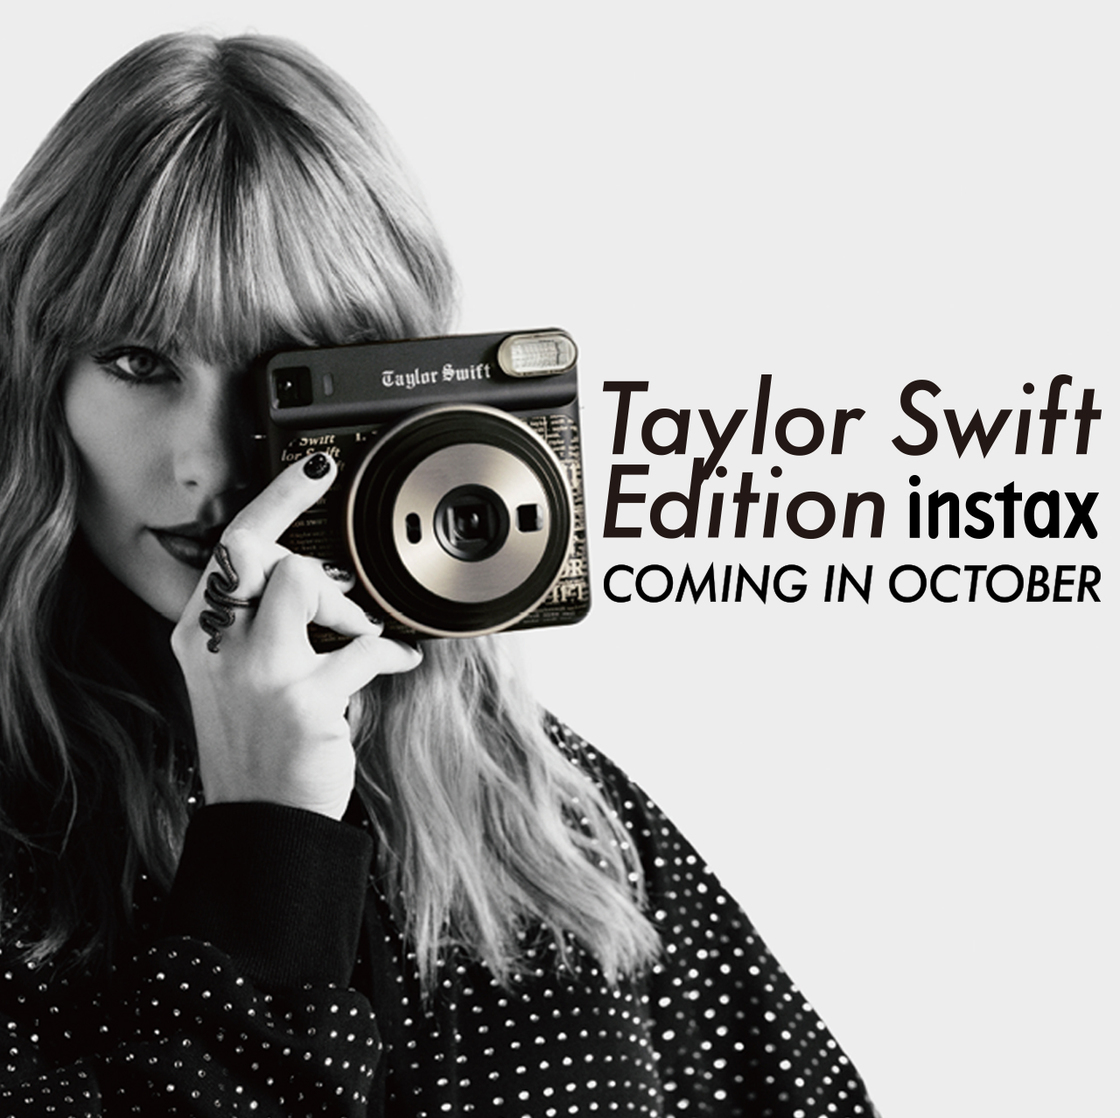 Preorder the instax SQUARE SQ6 Taylor Swift Edition